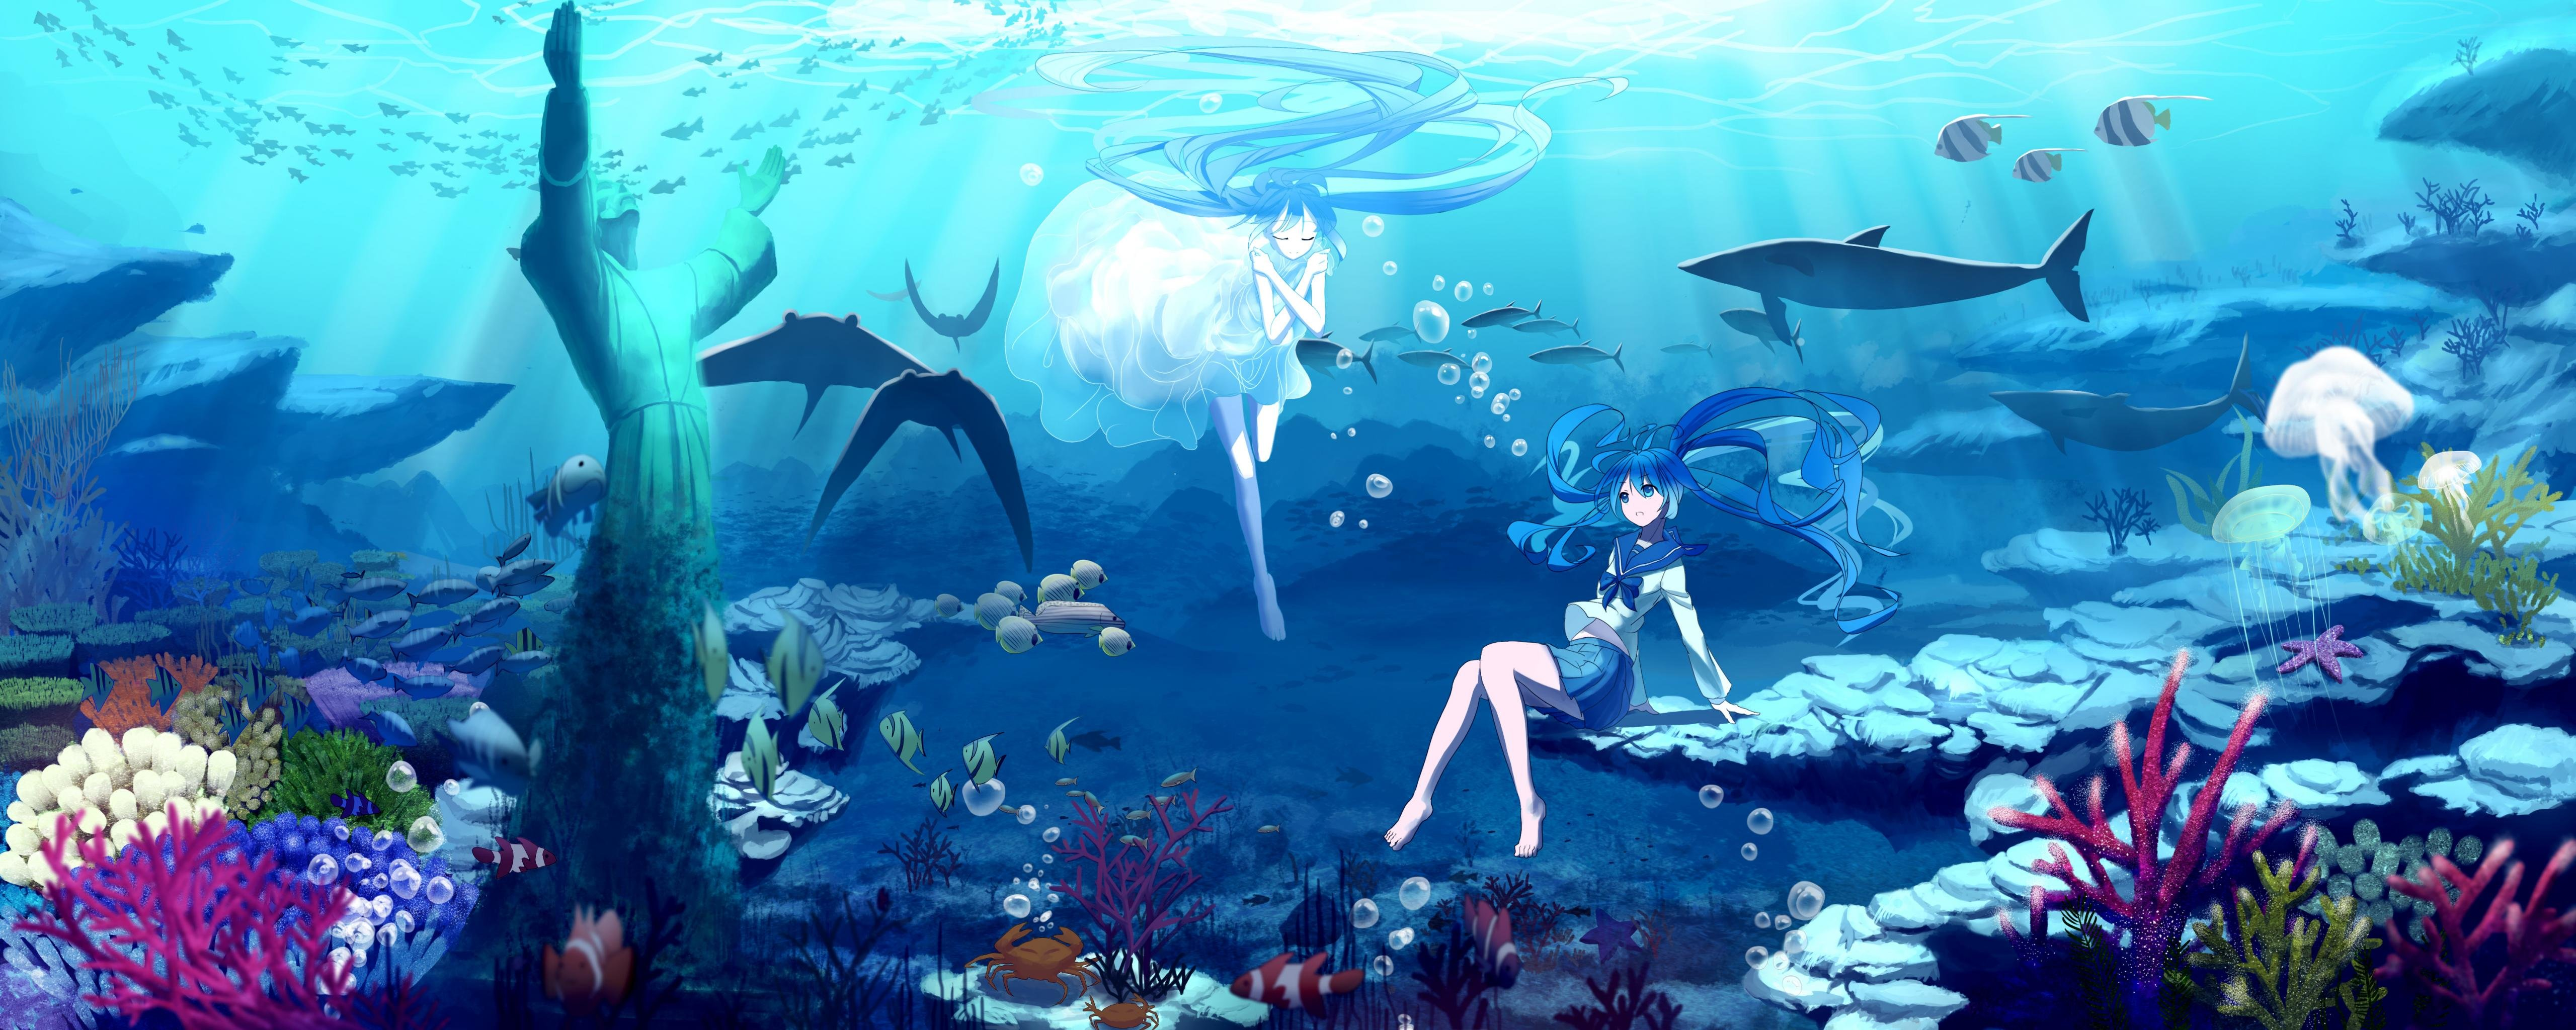 Download dual monitor 5120x2048 Hatsune Miku PC background ID:3251 for free